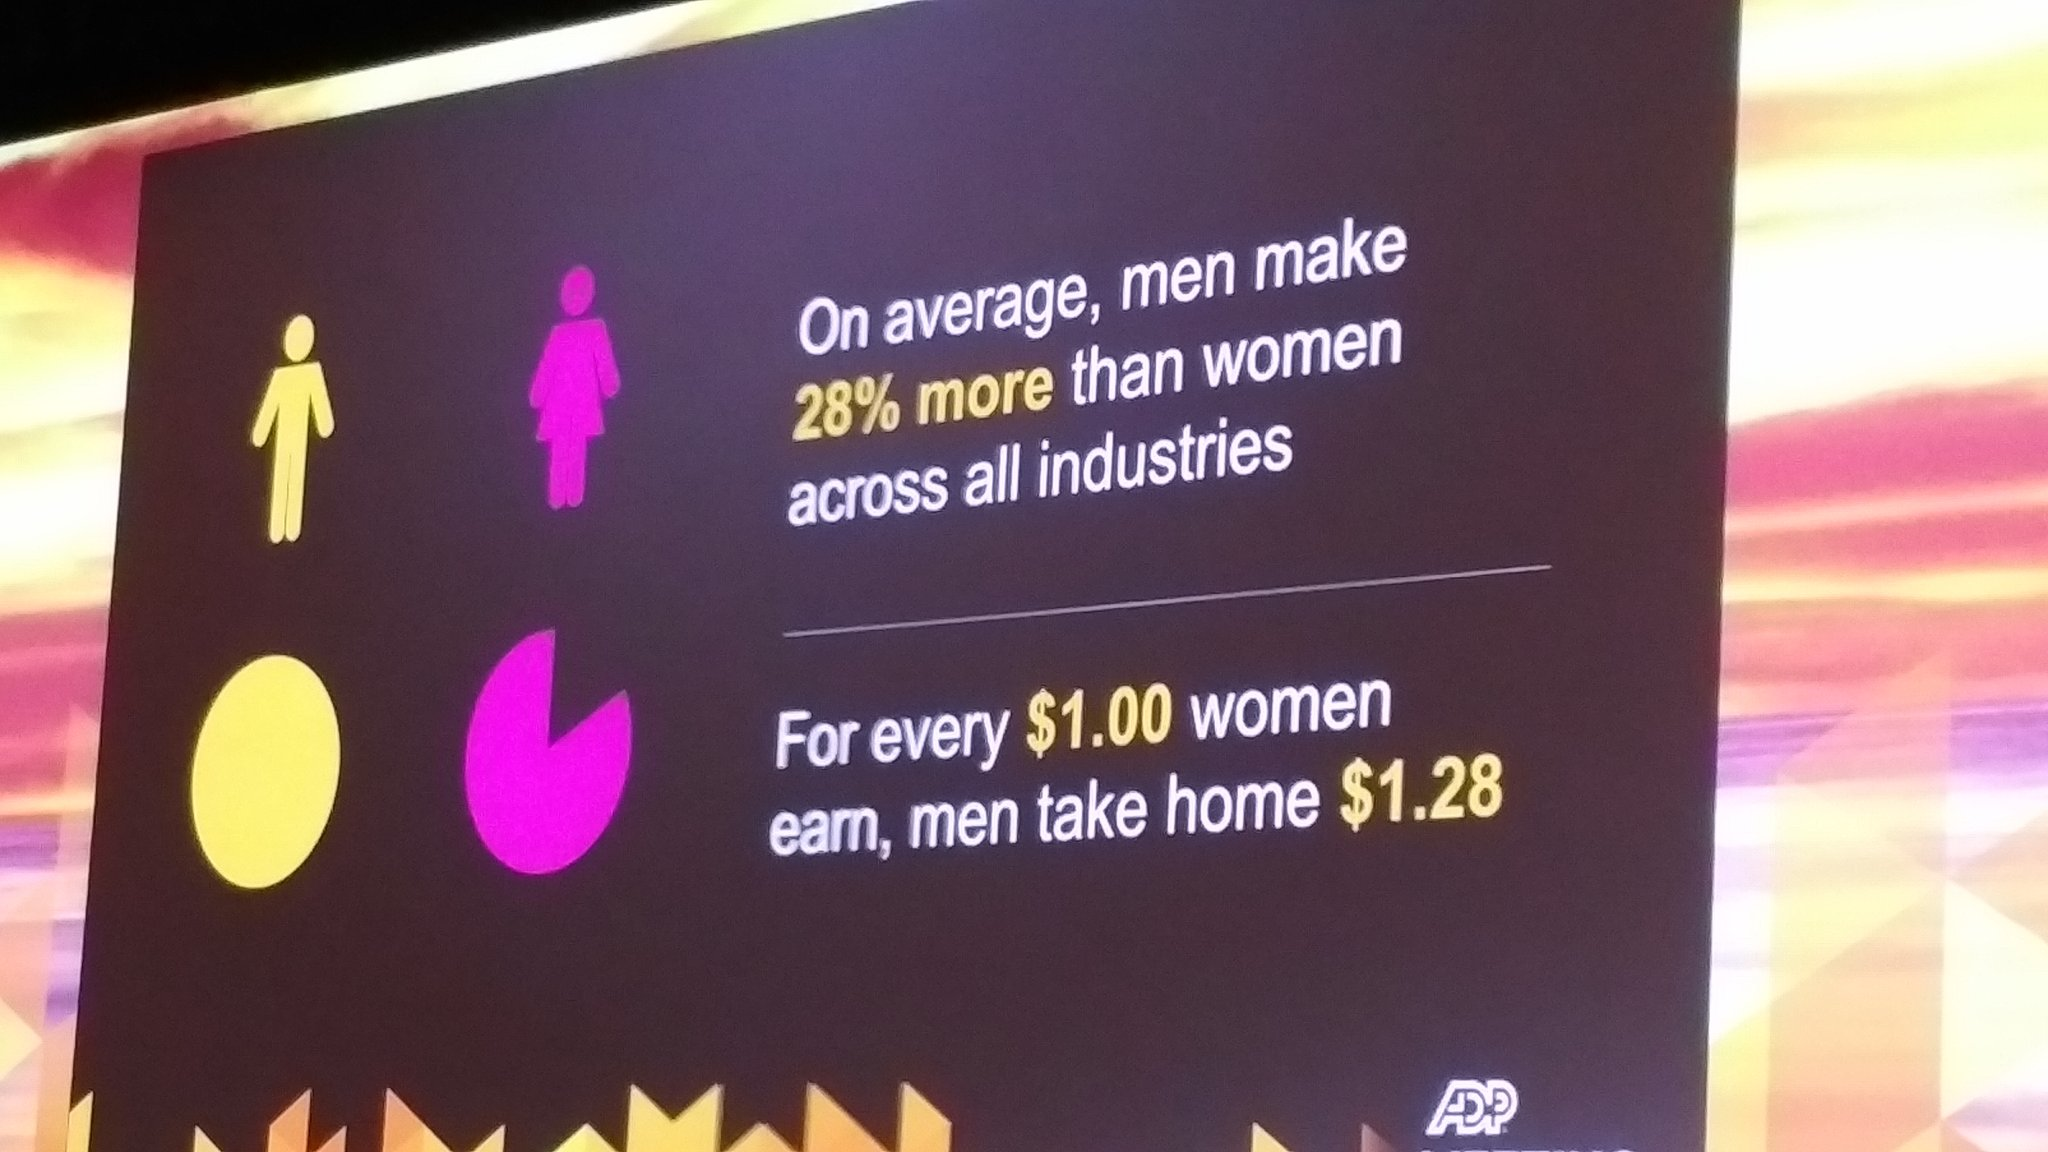 .@happycamby - on gender equity issues  - 28% men make more than women  - for every 1 women $ - man make 1.28 #ADPMOTM https://t.co/q25tM9sWNp